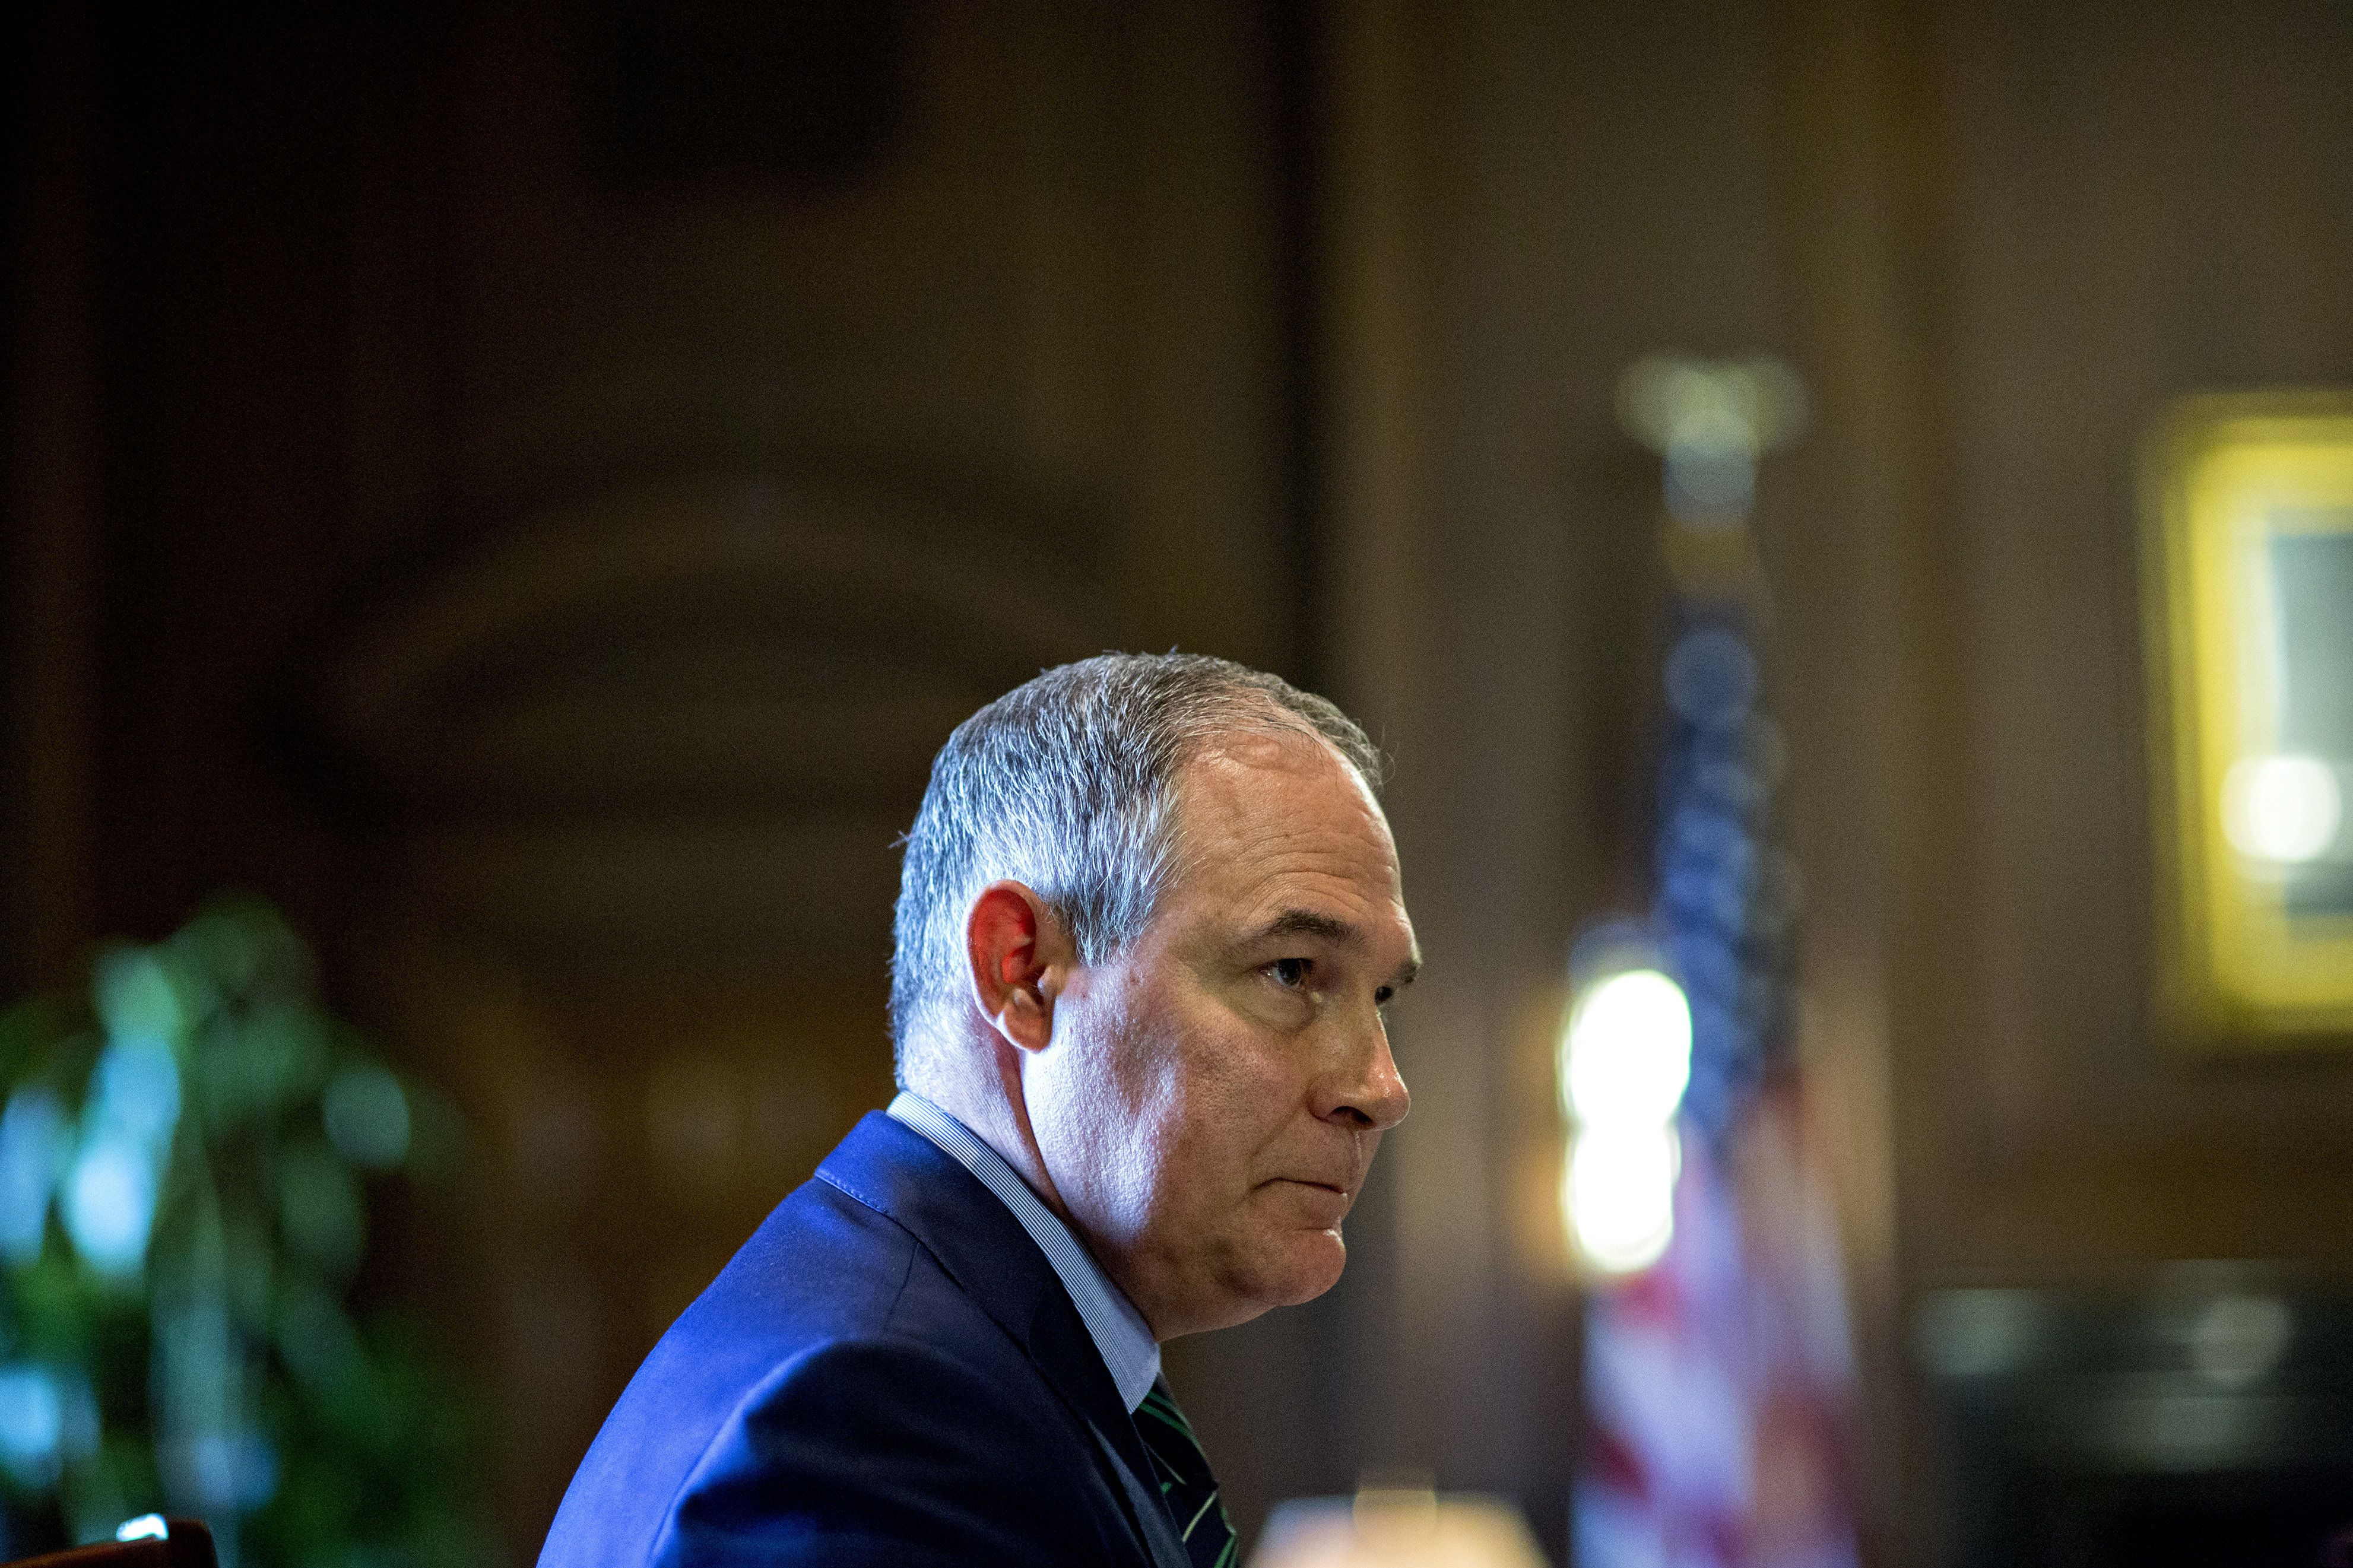 EPA Administrator Scott Pruitt is often booked into first or business class seats, often costing taxpayers thousands more tha